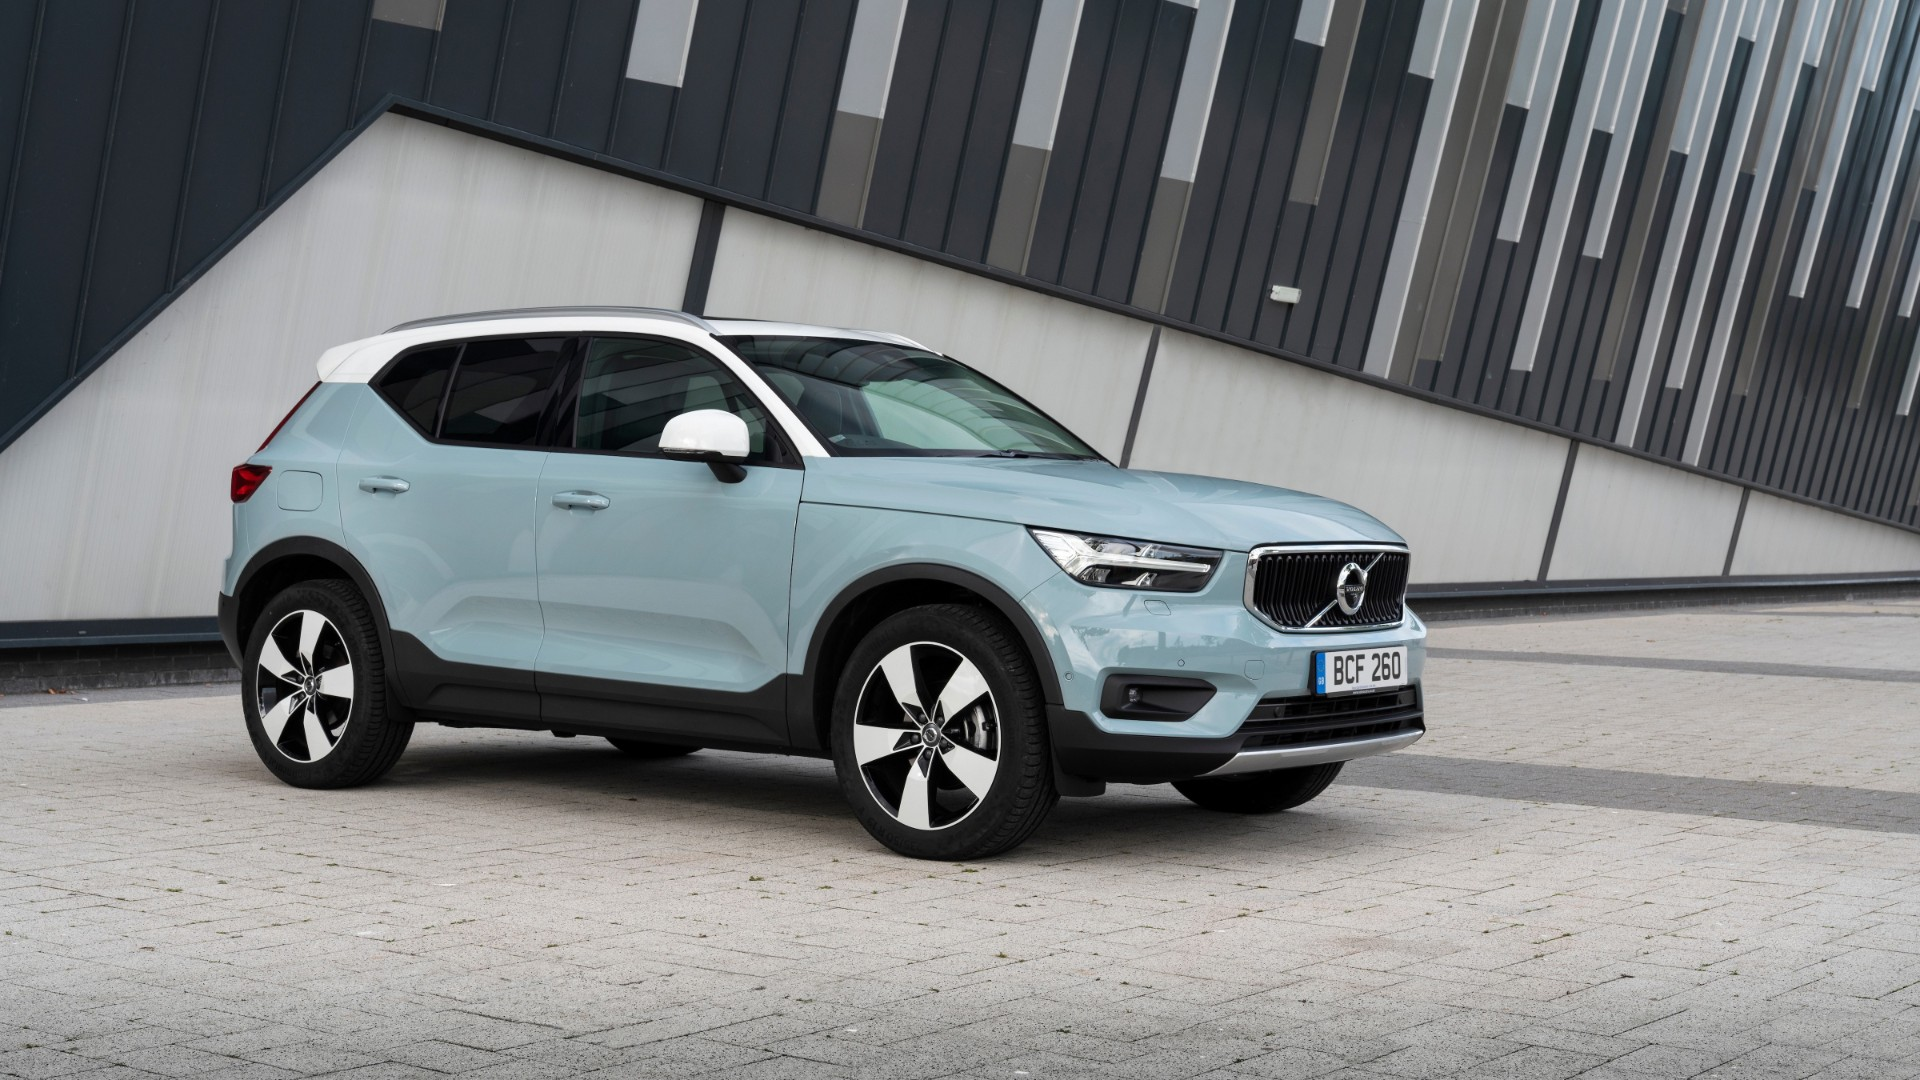 Volvo is the UK's fastest-growing premium car brand